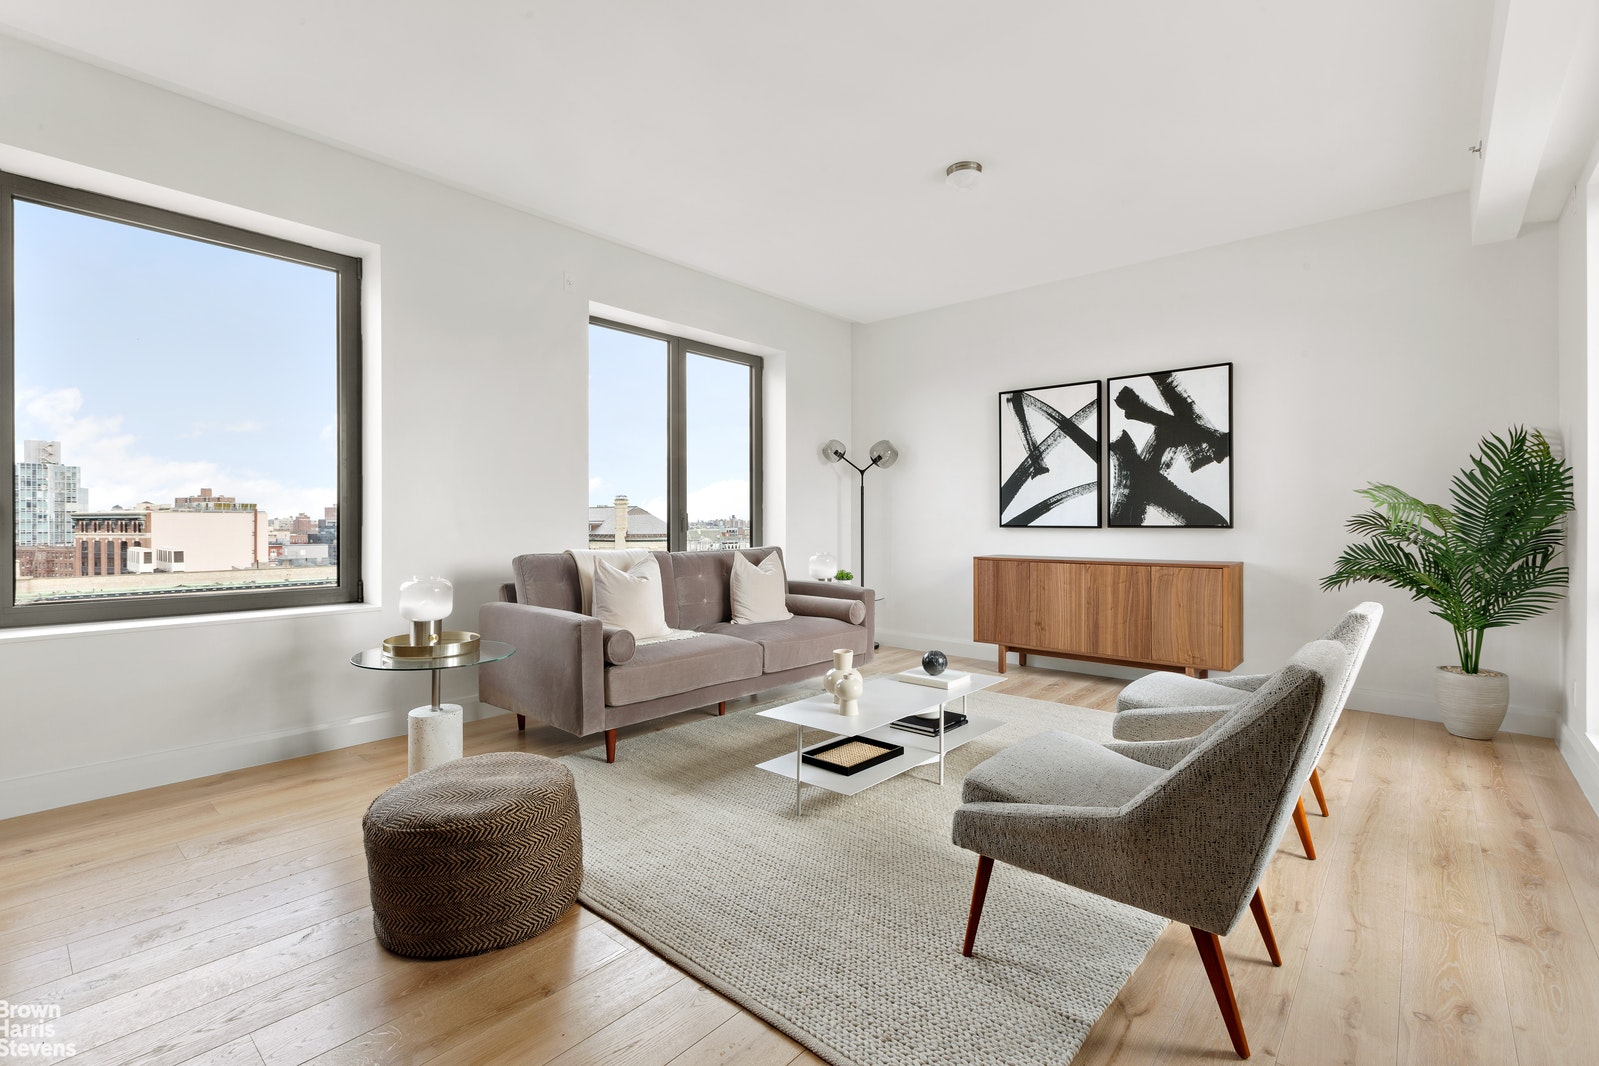 653 Bergen St Ph, Prospect Heights, Brooklyn, NY, 11238, $2,995,000, Property For Sale, Halstead Real Estate, Photo 1